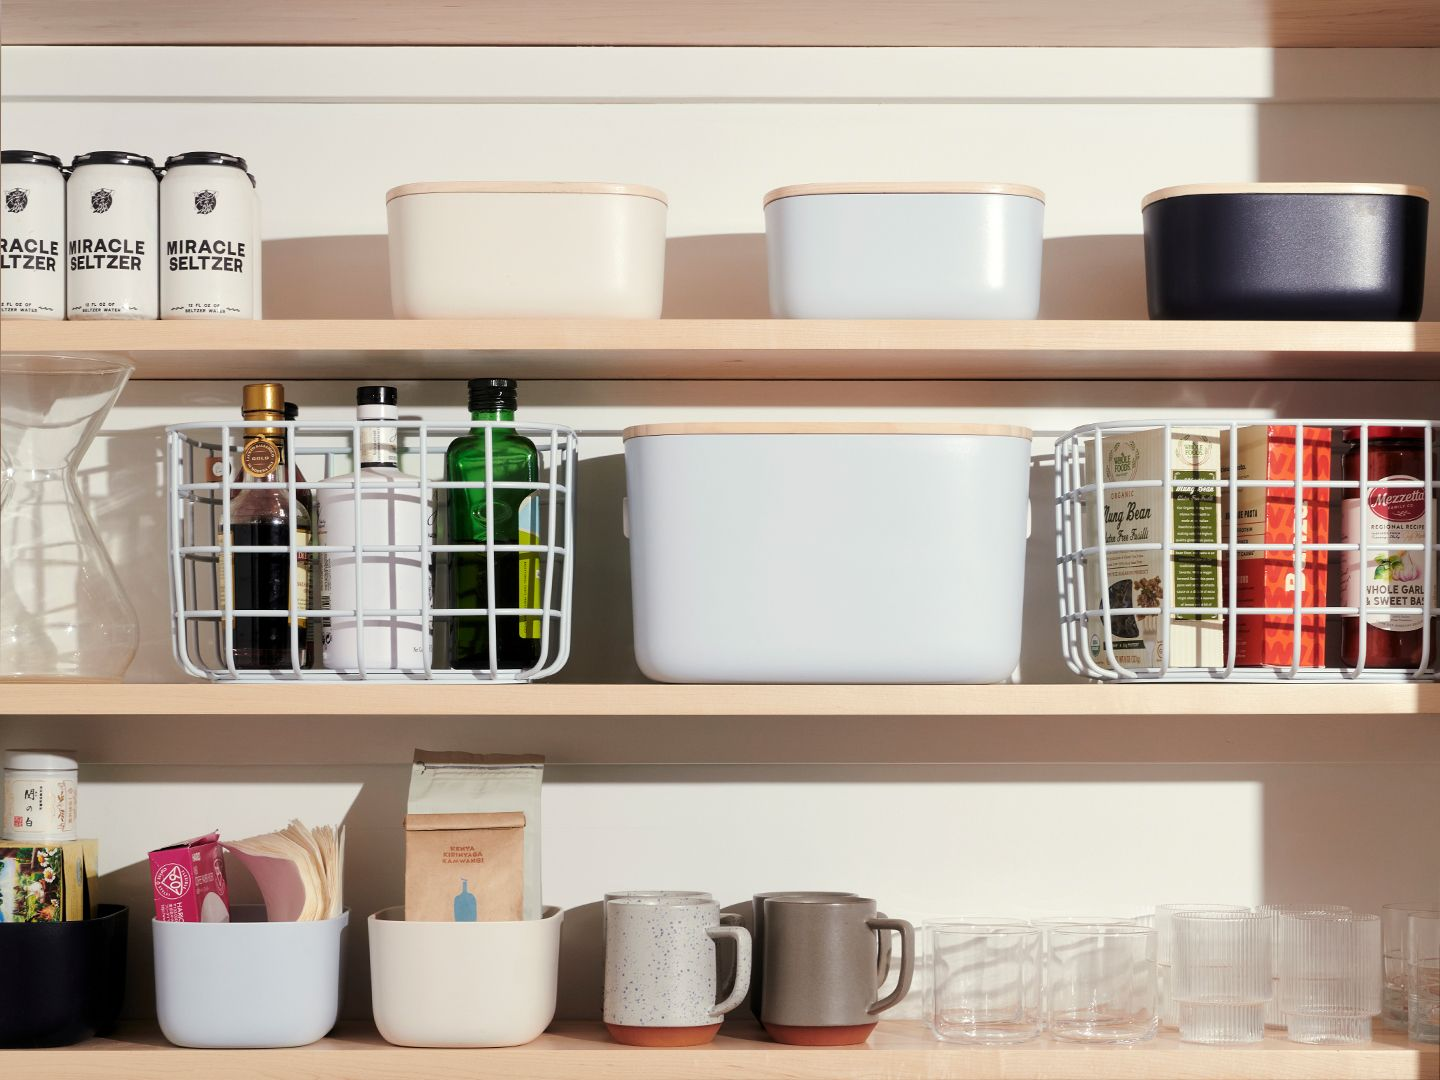 A pantry with various Open Spaces bins and baskets.